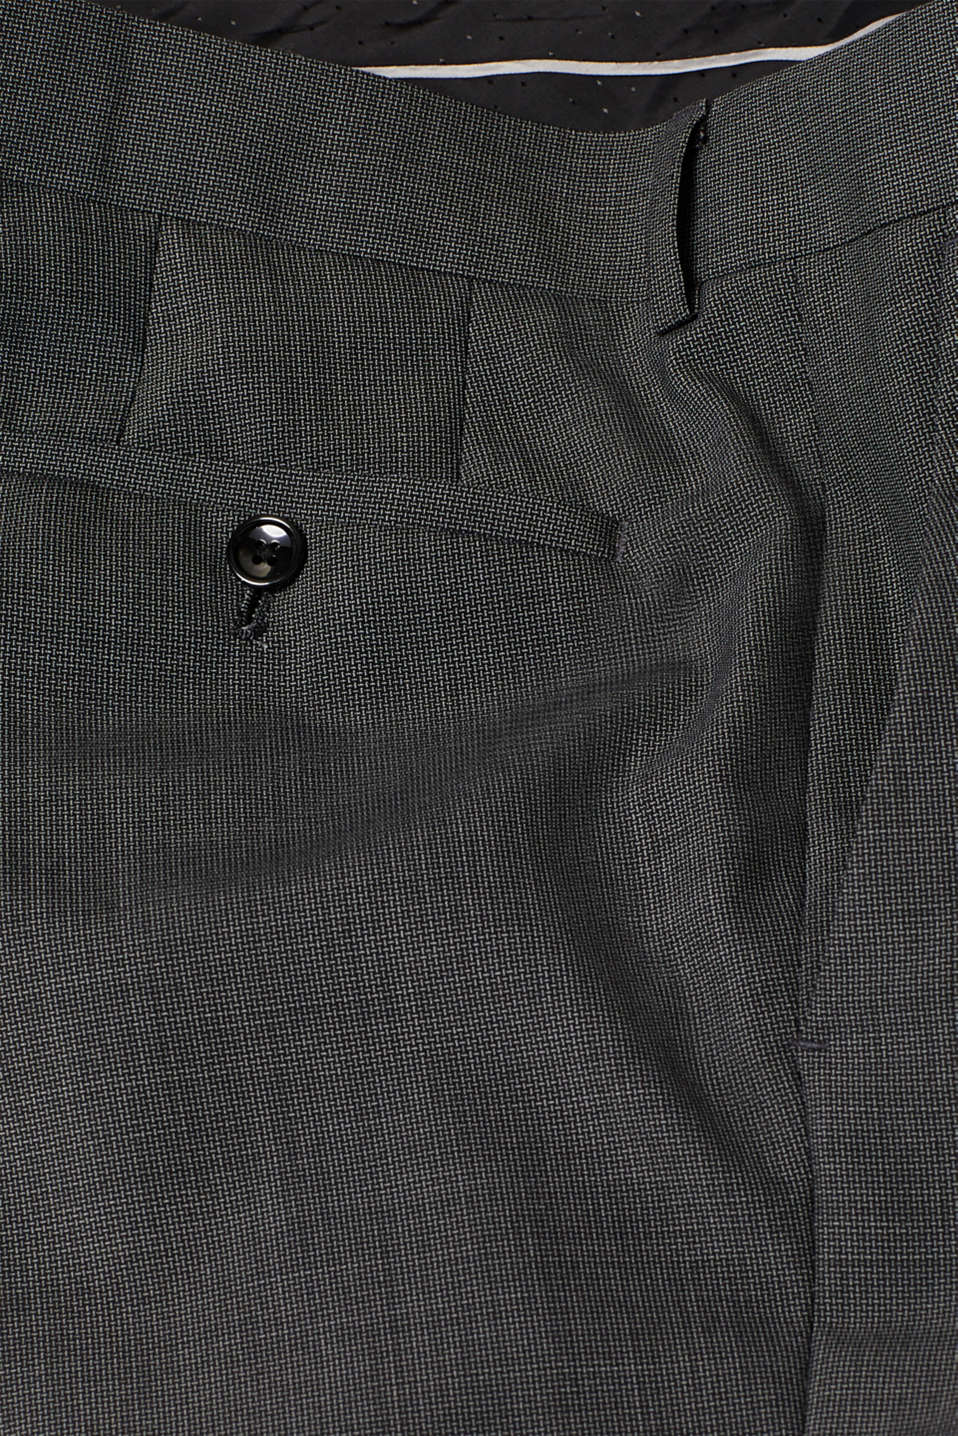 Pants suit Extra Slim fit, DARK GREY 5, detail image number 5